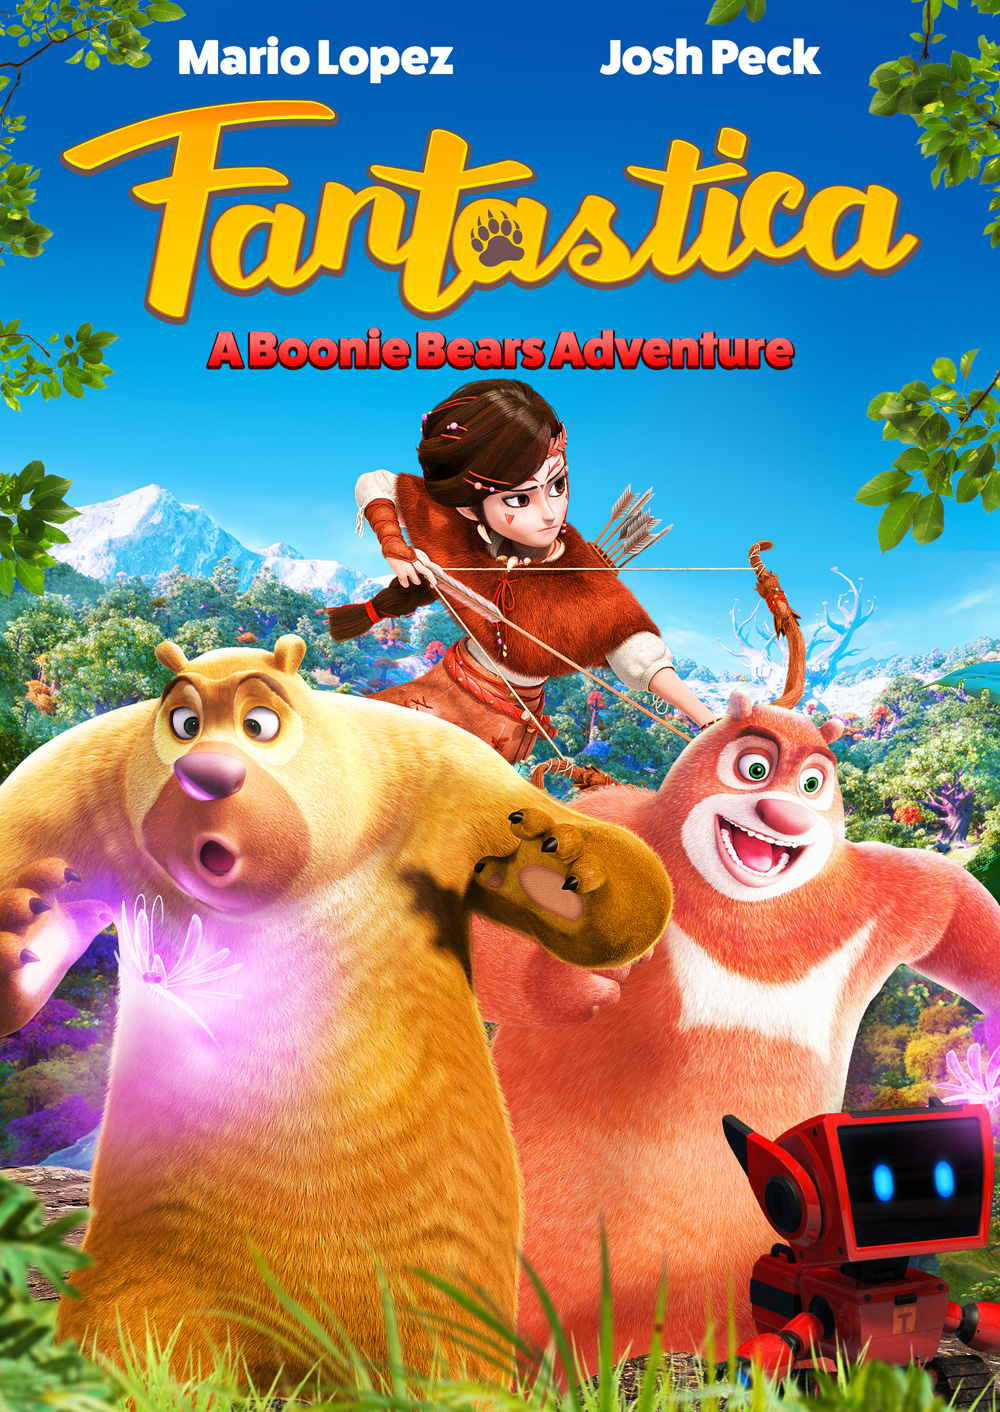 Josh Peck Gives First Look At Fantastica A Boonie Bears